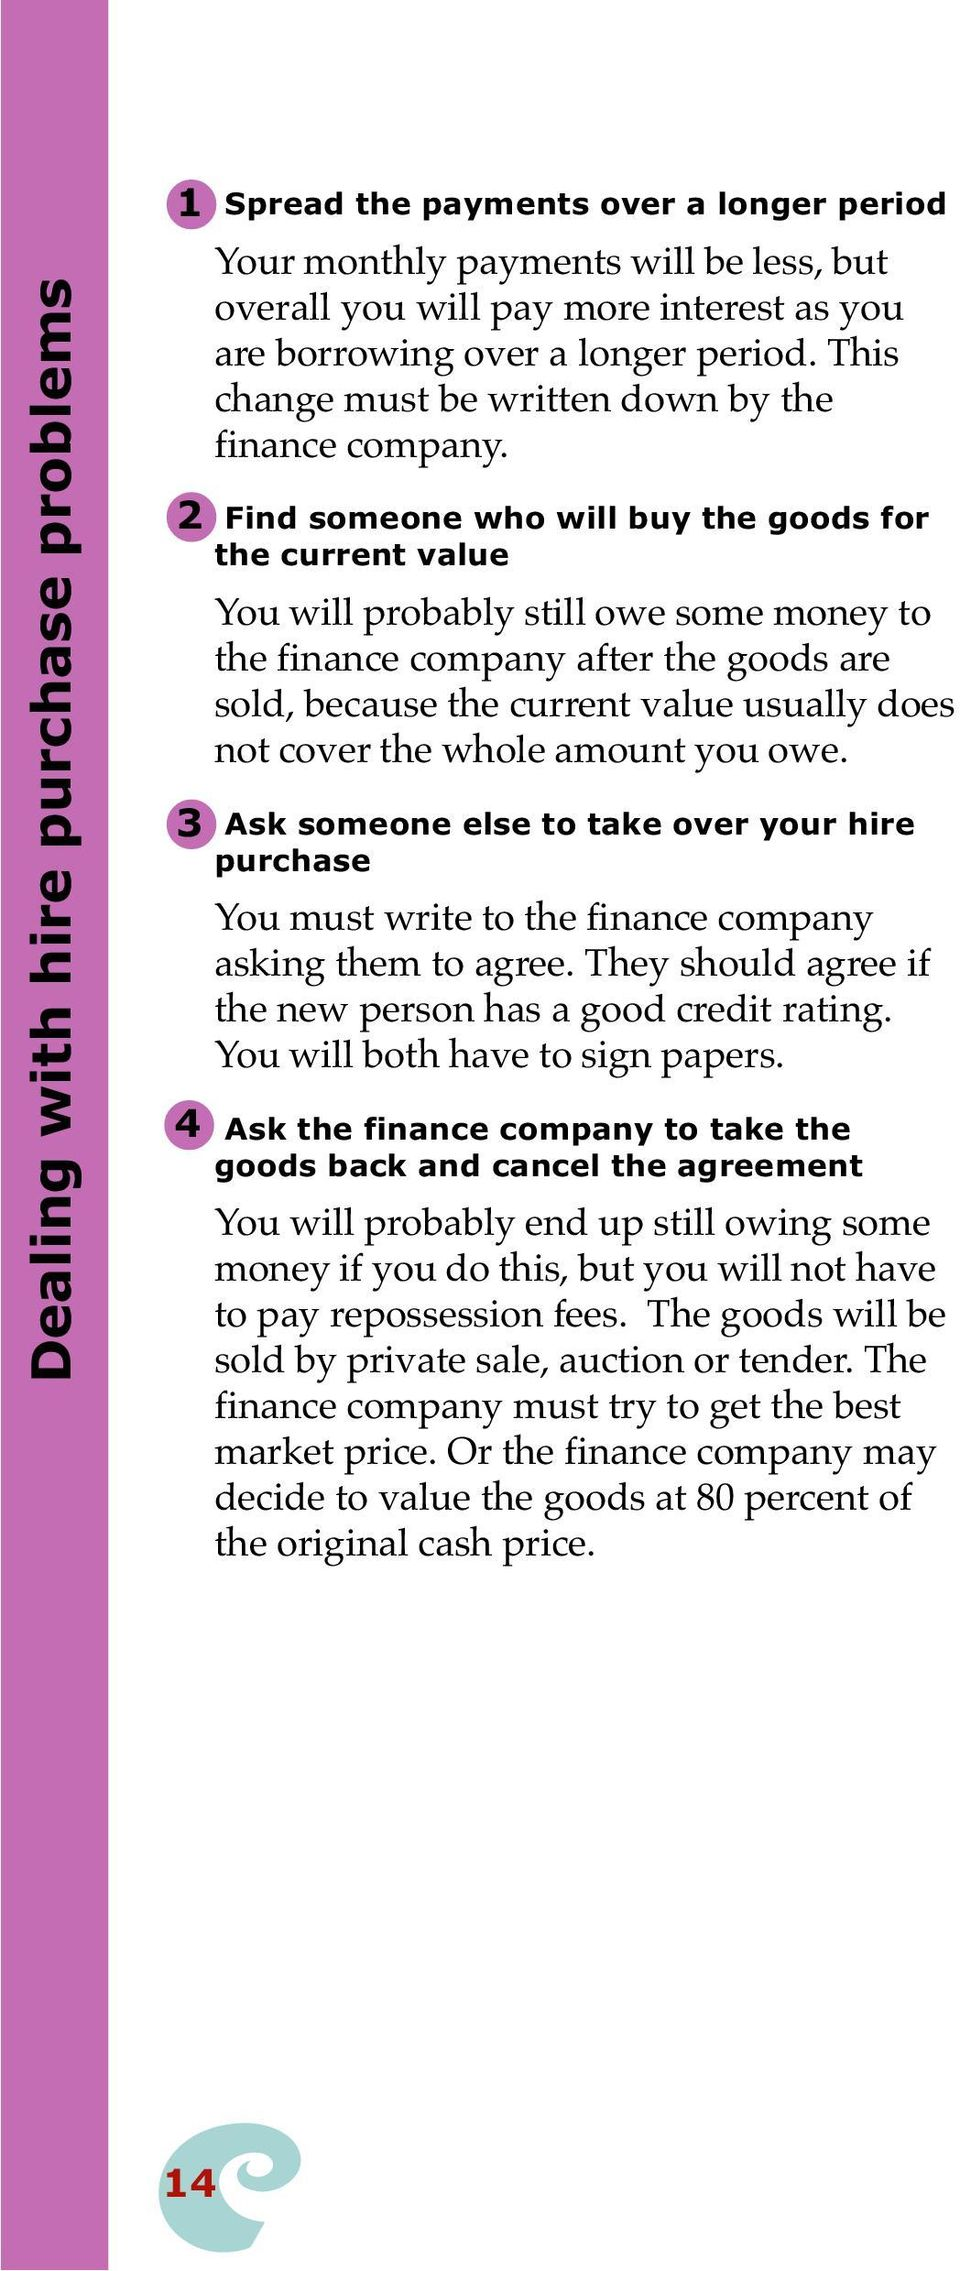 2 Find someone who will buy the goods for the current value You will probably still owe some money to the finance company after the goods are sold, because the current value usually does not cover